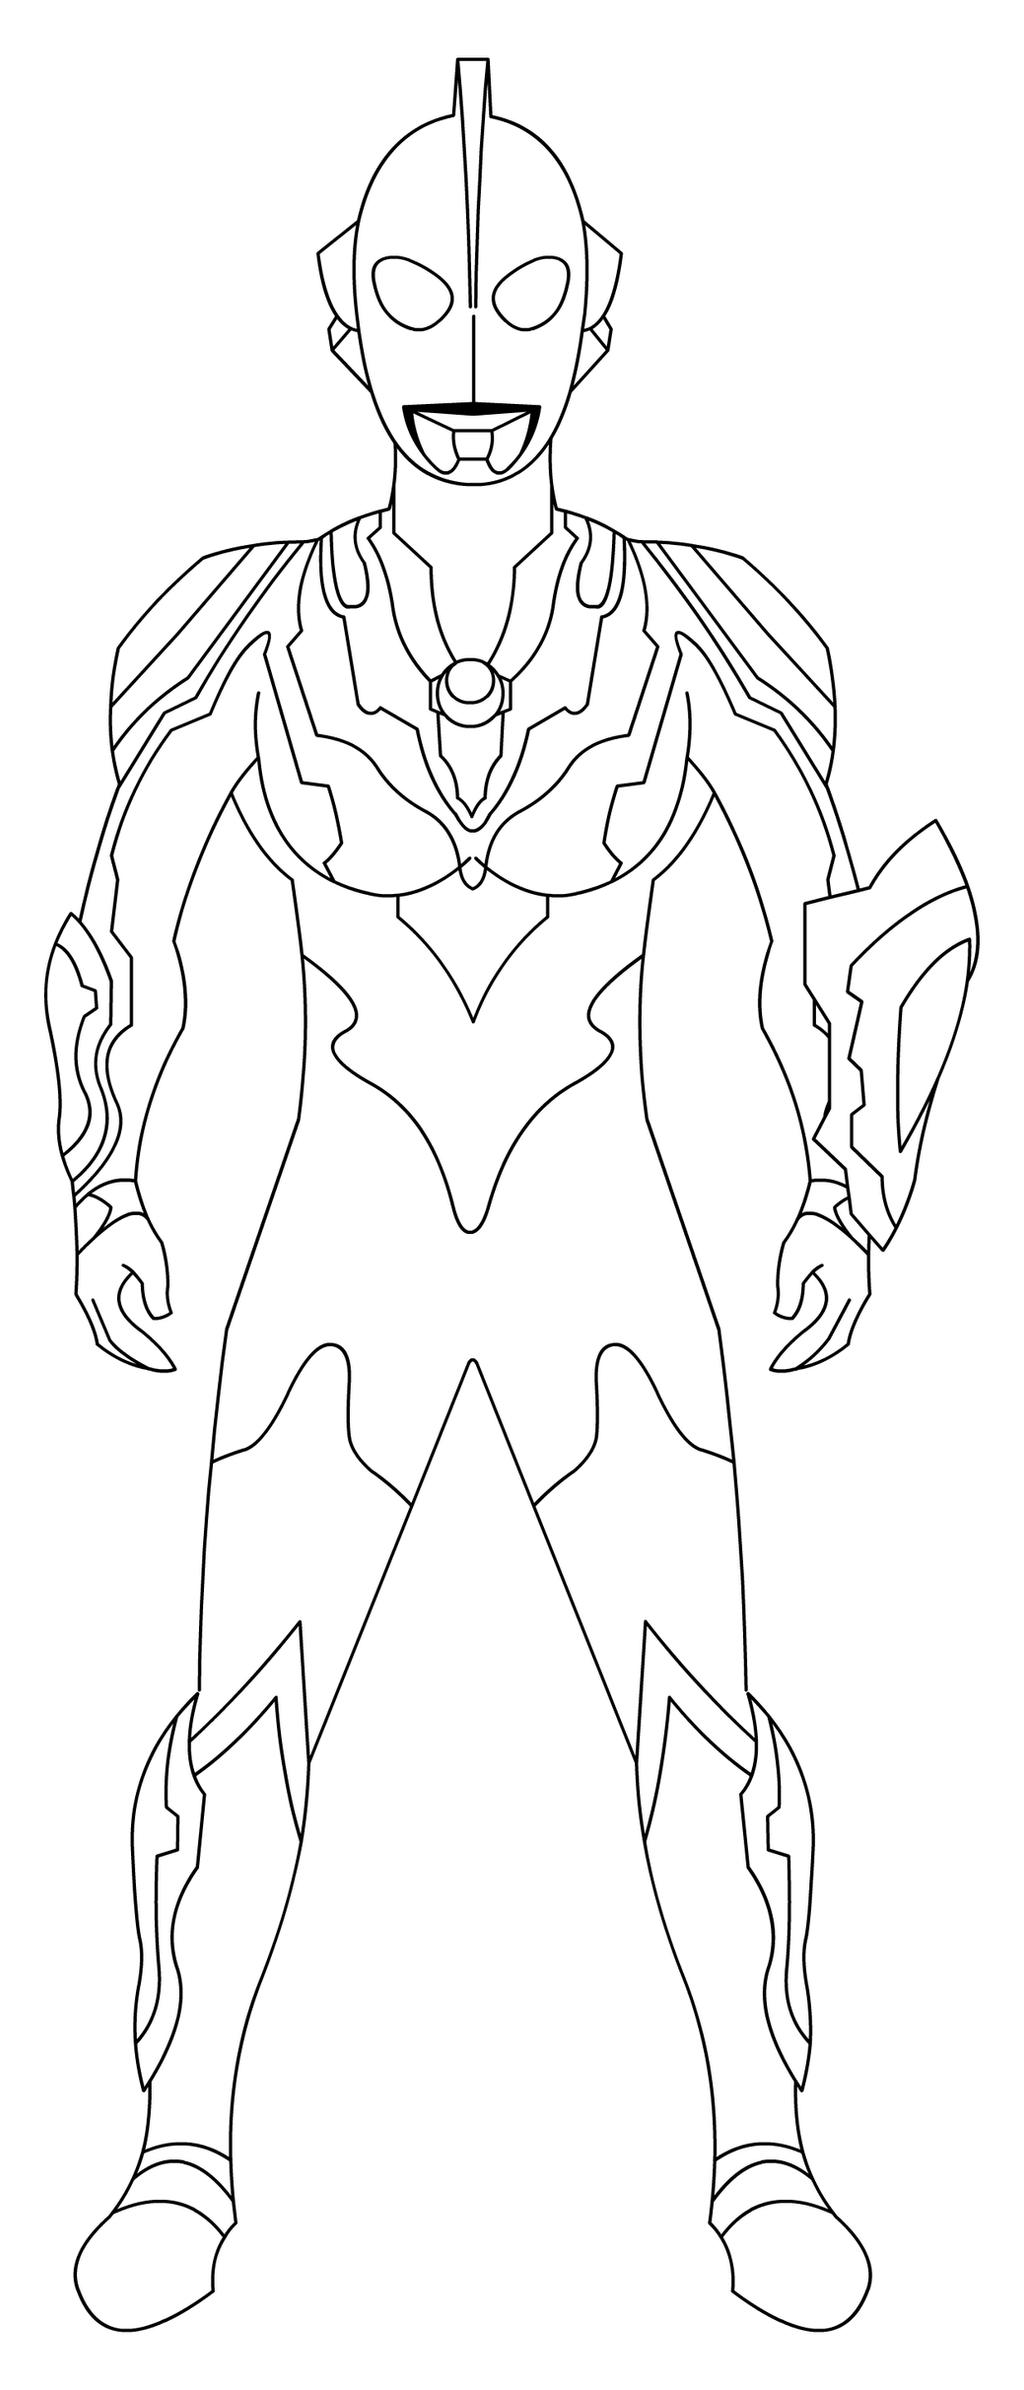 Ultraman Ribut Coloring Page 02 By Riderb0y On Deviantart